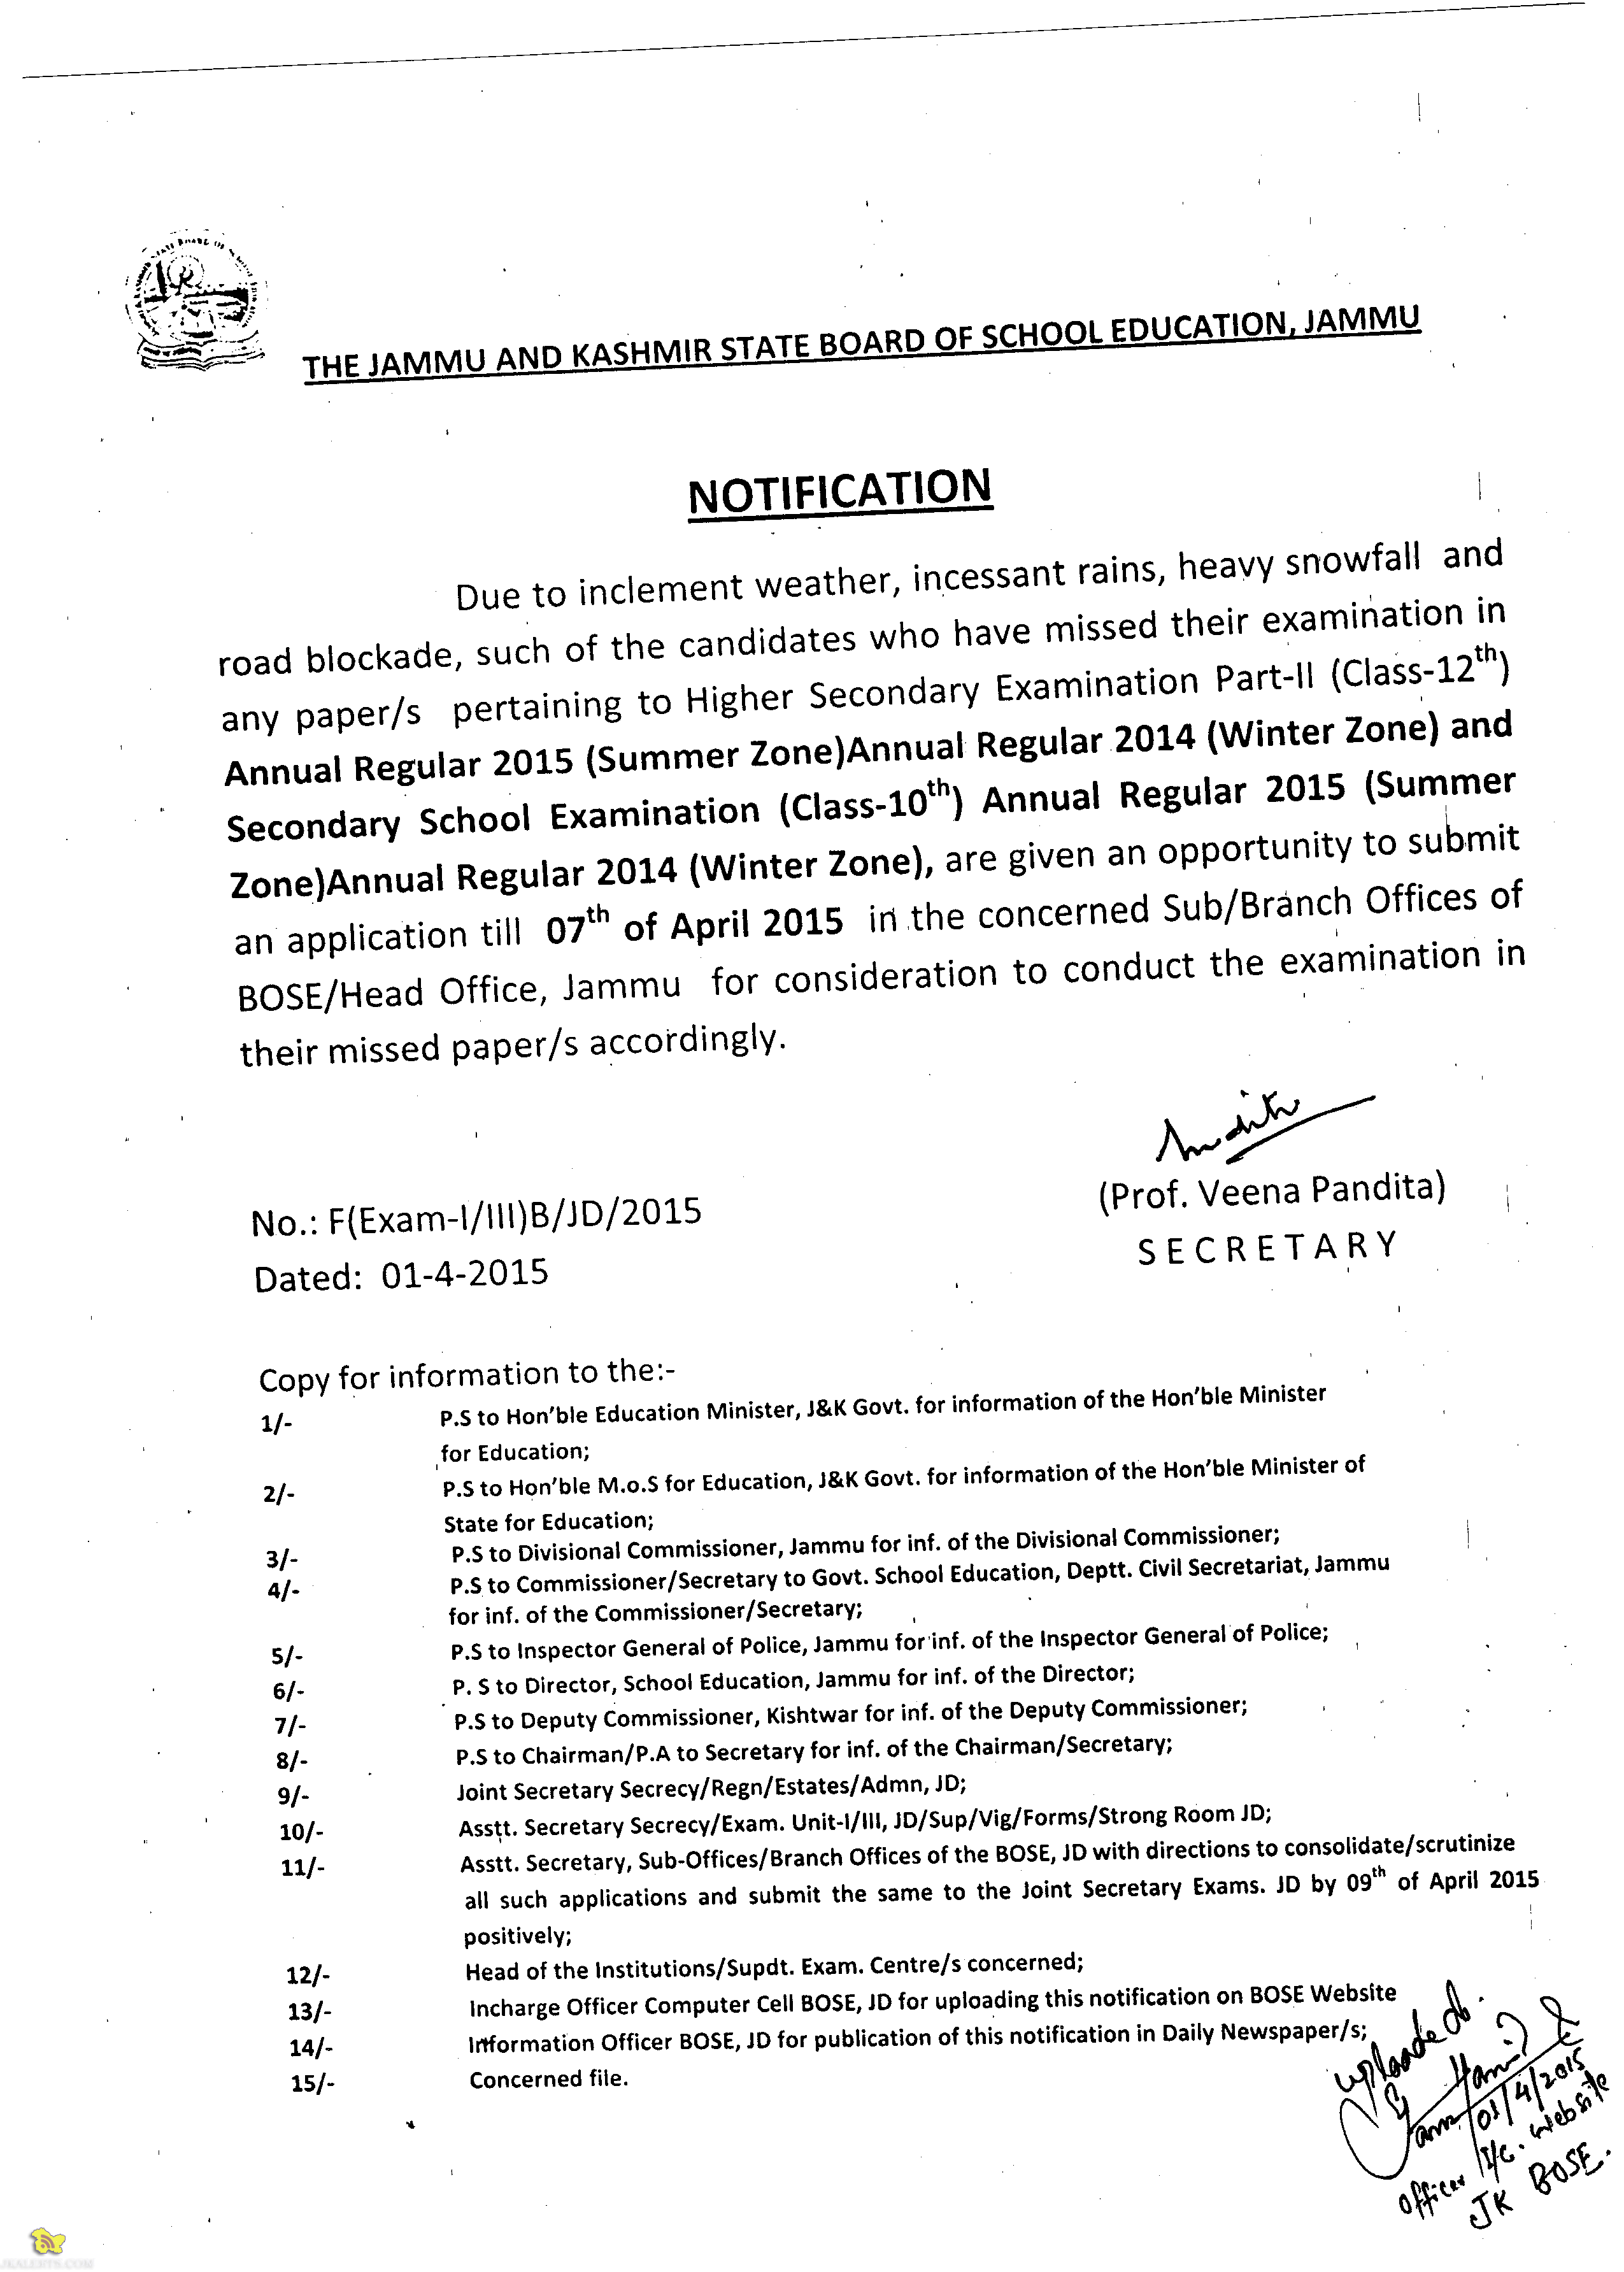 Jkbose Notification Reagards Students Missed their class 10th and 12th exams